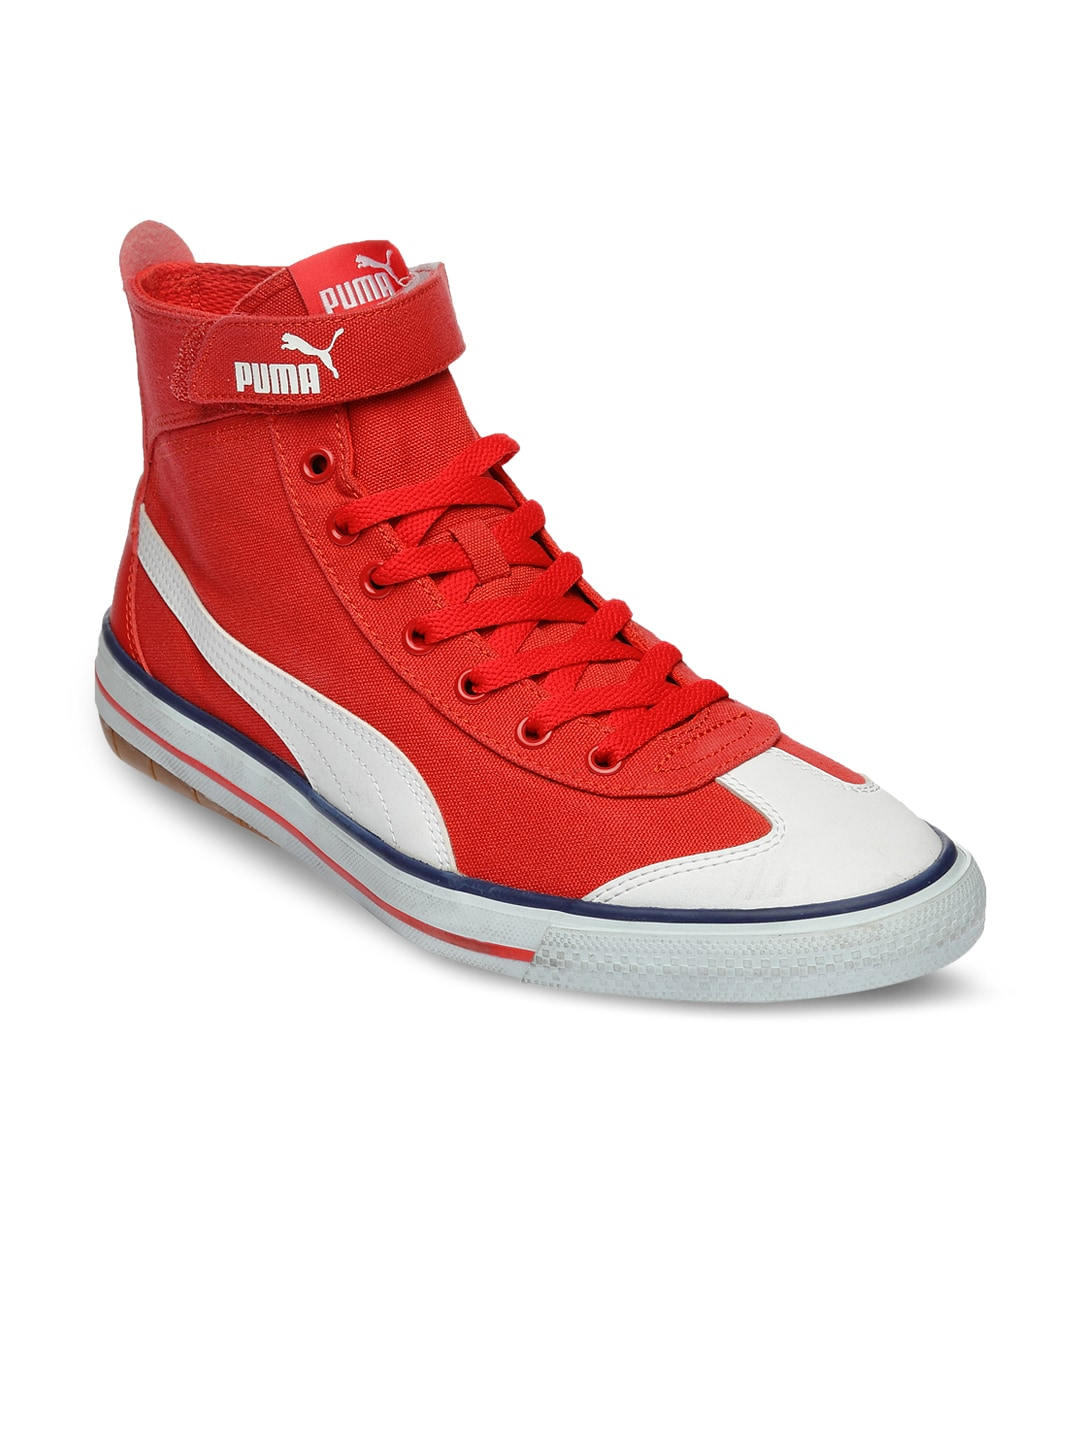 77b3903e81cf Puma 36334601 Men Red 917 Mid Dp Casual Shoes - Best Price in ...